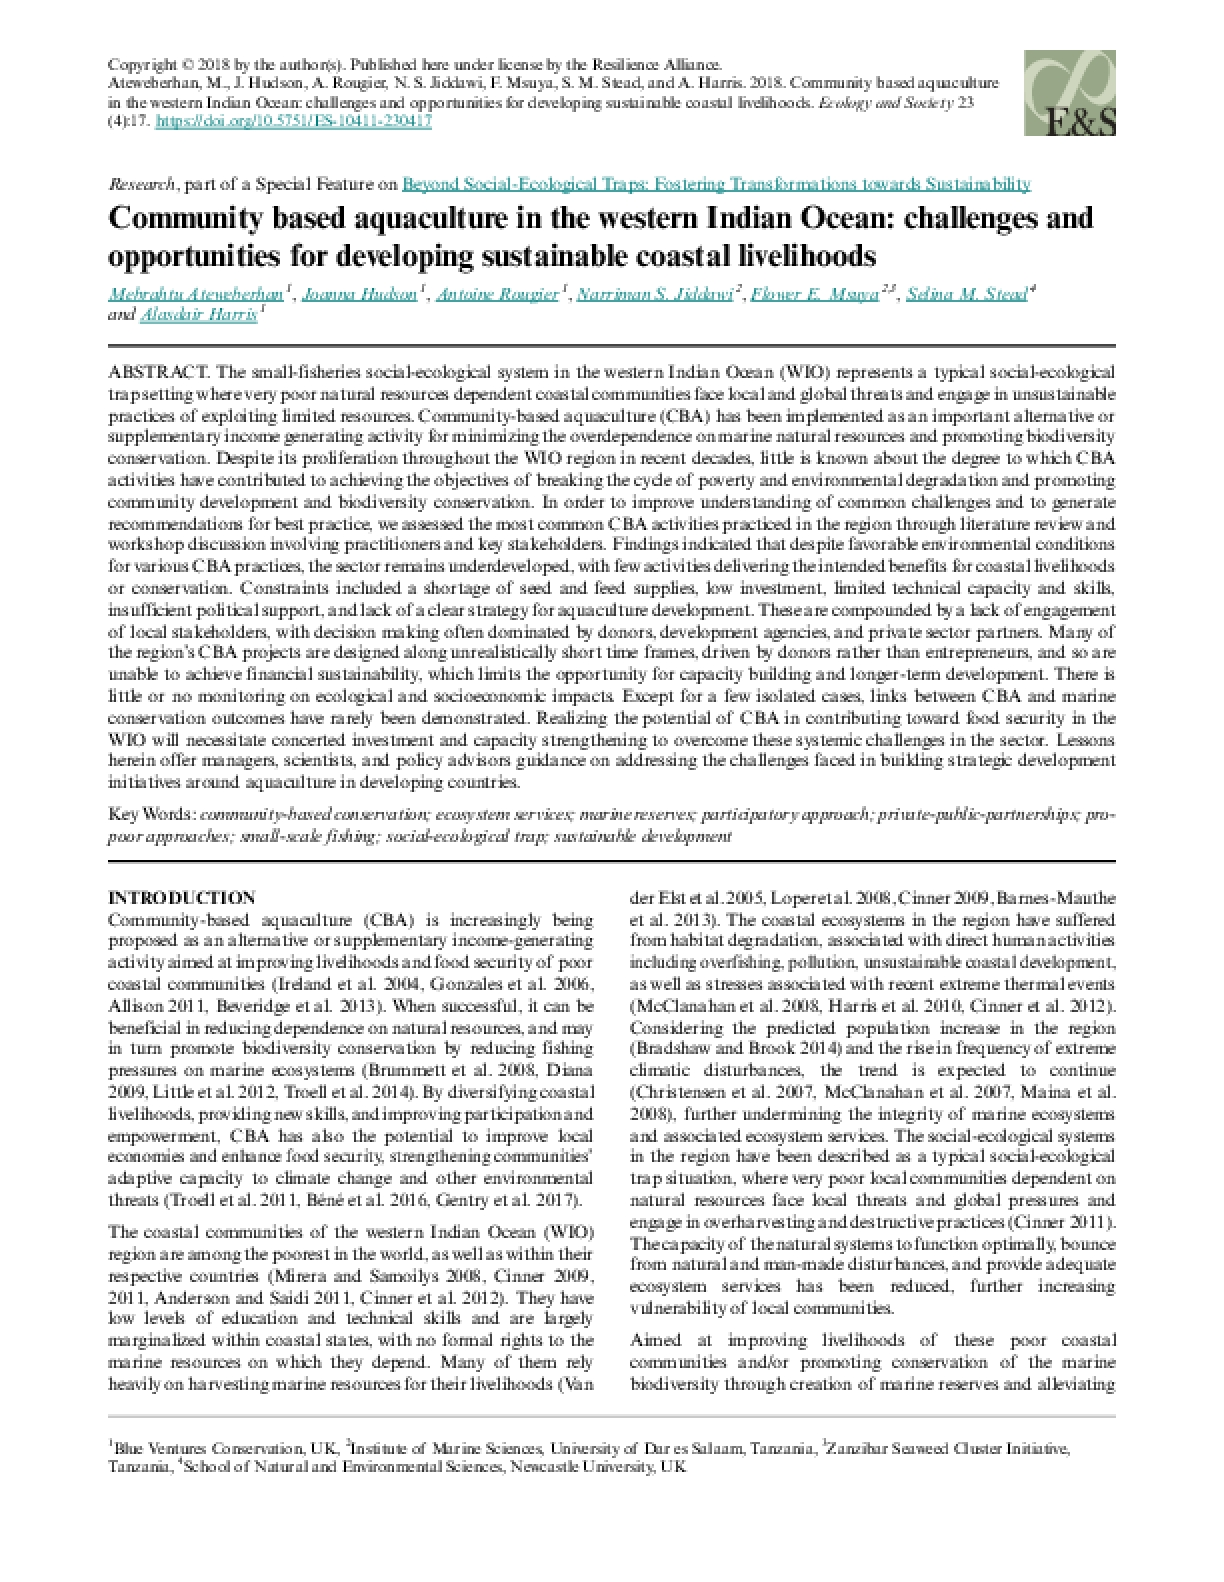 Community Based Aquaculture in the Western Indian Ocean: Challenges and Opportunities for Developing Sustainable Coastal Livelihoods